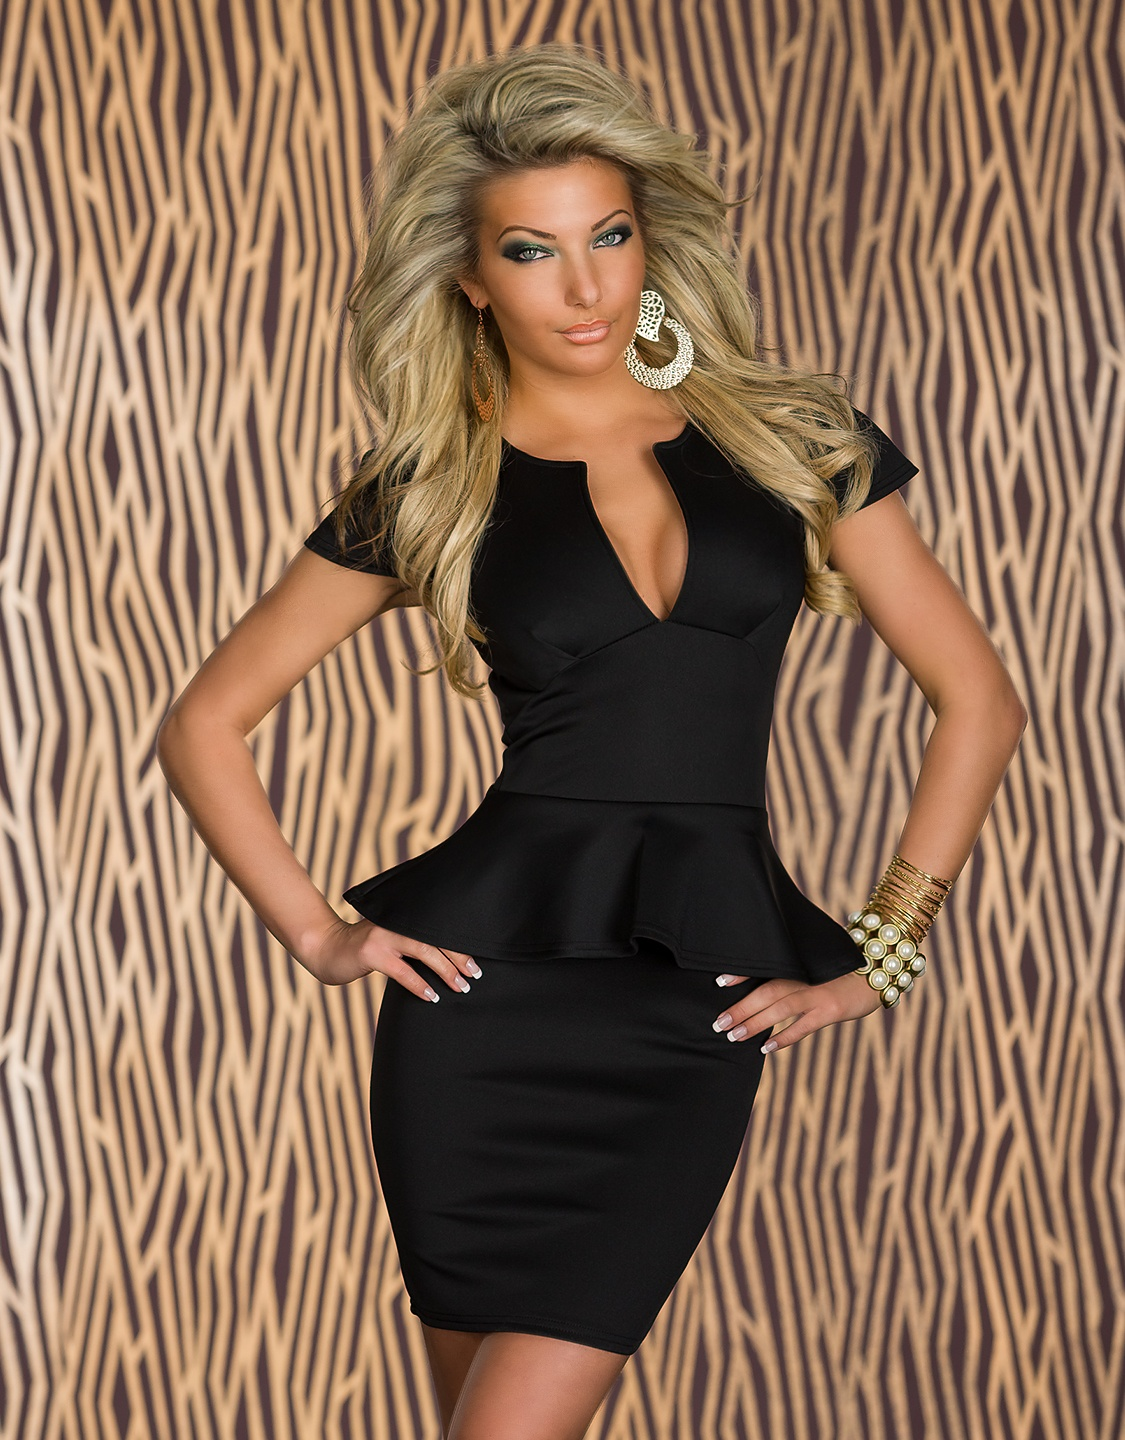 Black Cut Low-Necked Peplum Dress With Short Sleeves